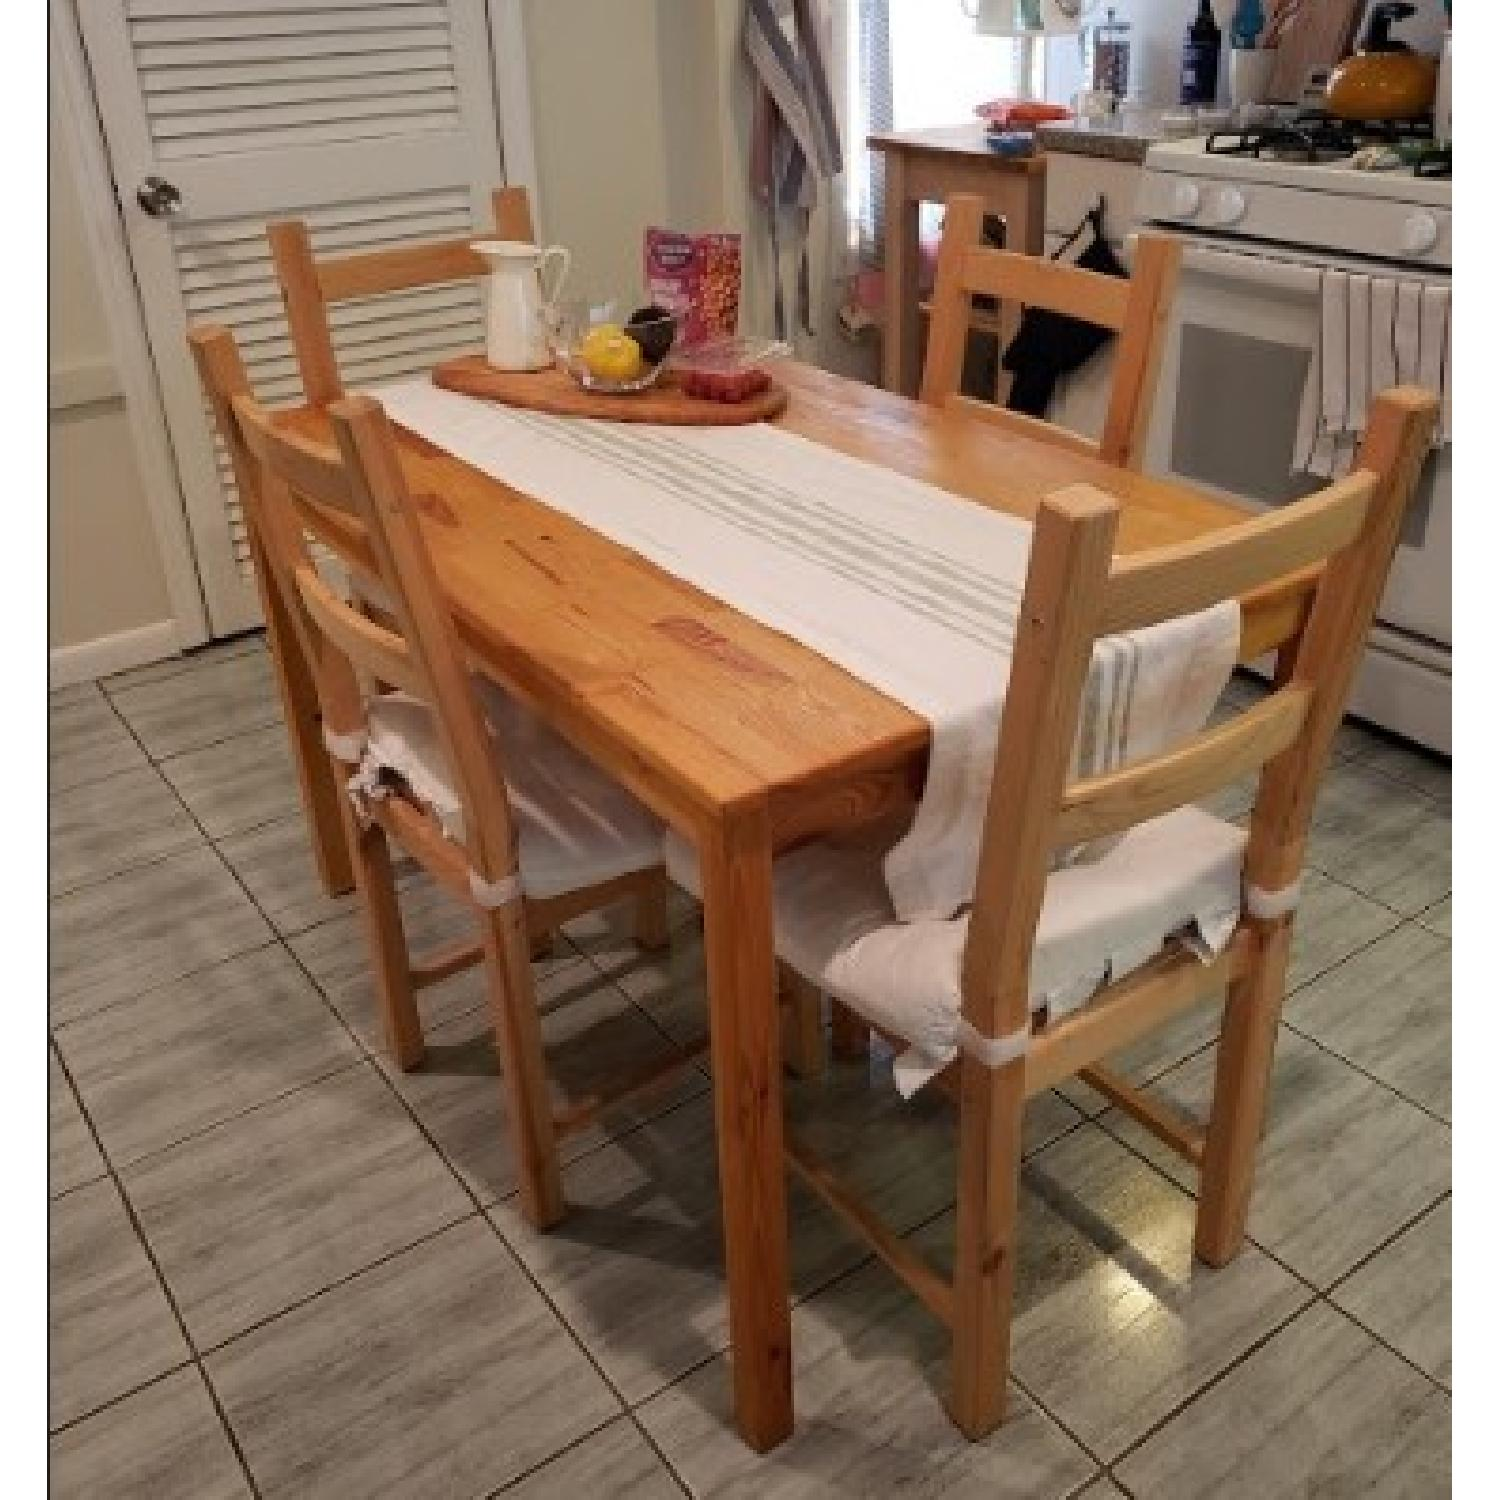 Ikea Ingo Natural Pinewood Dining Table w/ 4 Chairs - image-2